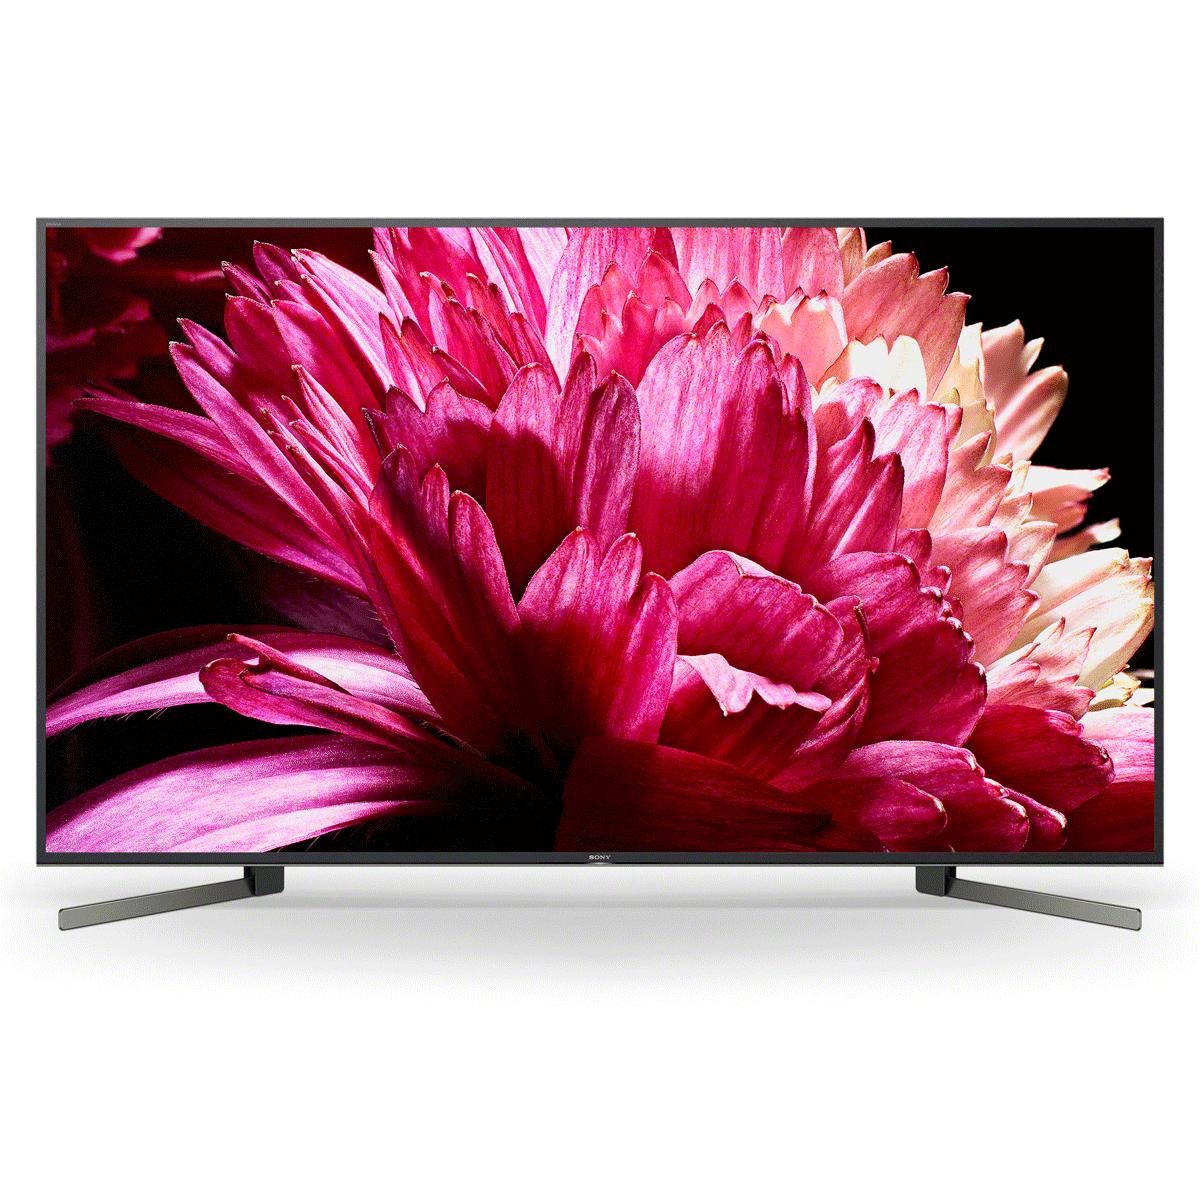 Bảng giá Android Tivi SONY 75 Inch KD-75X8000G VN3 LED 4K